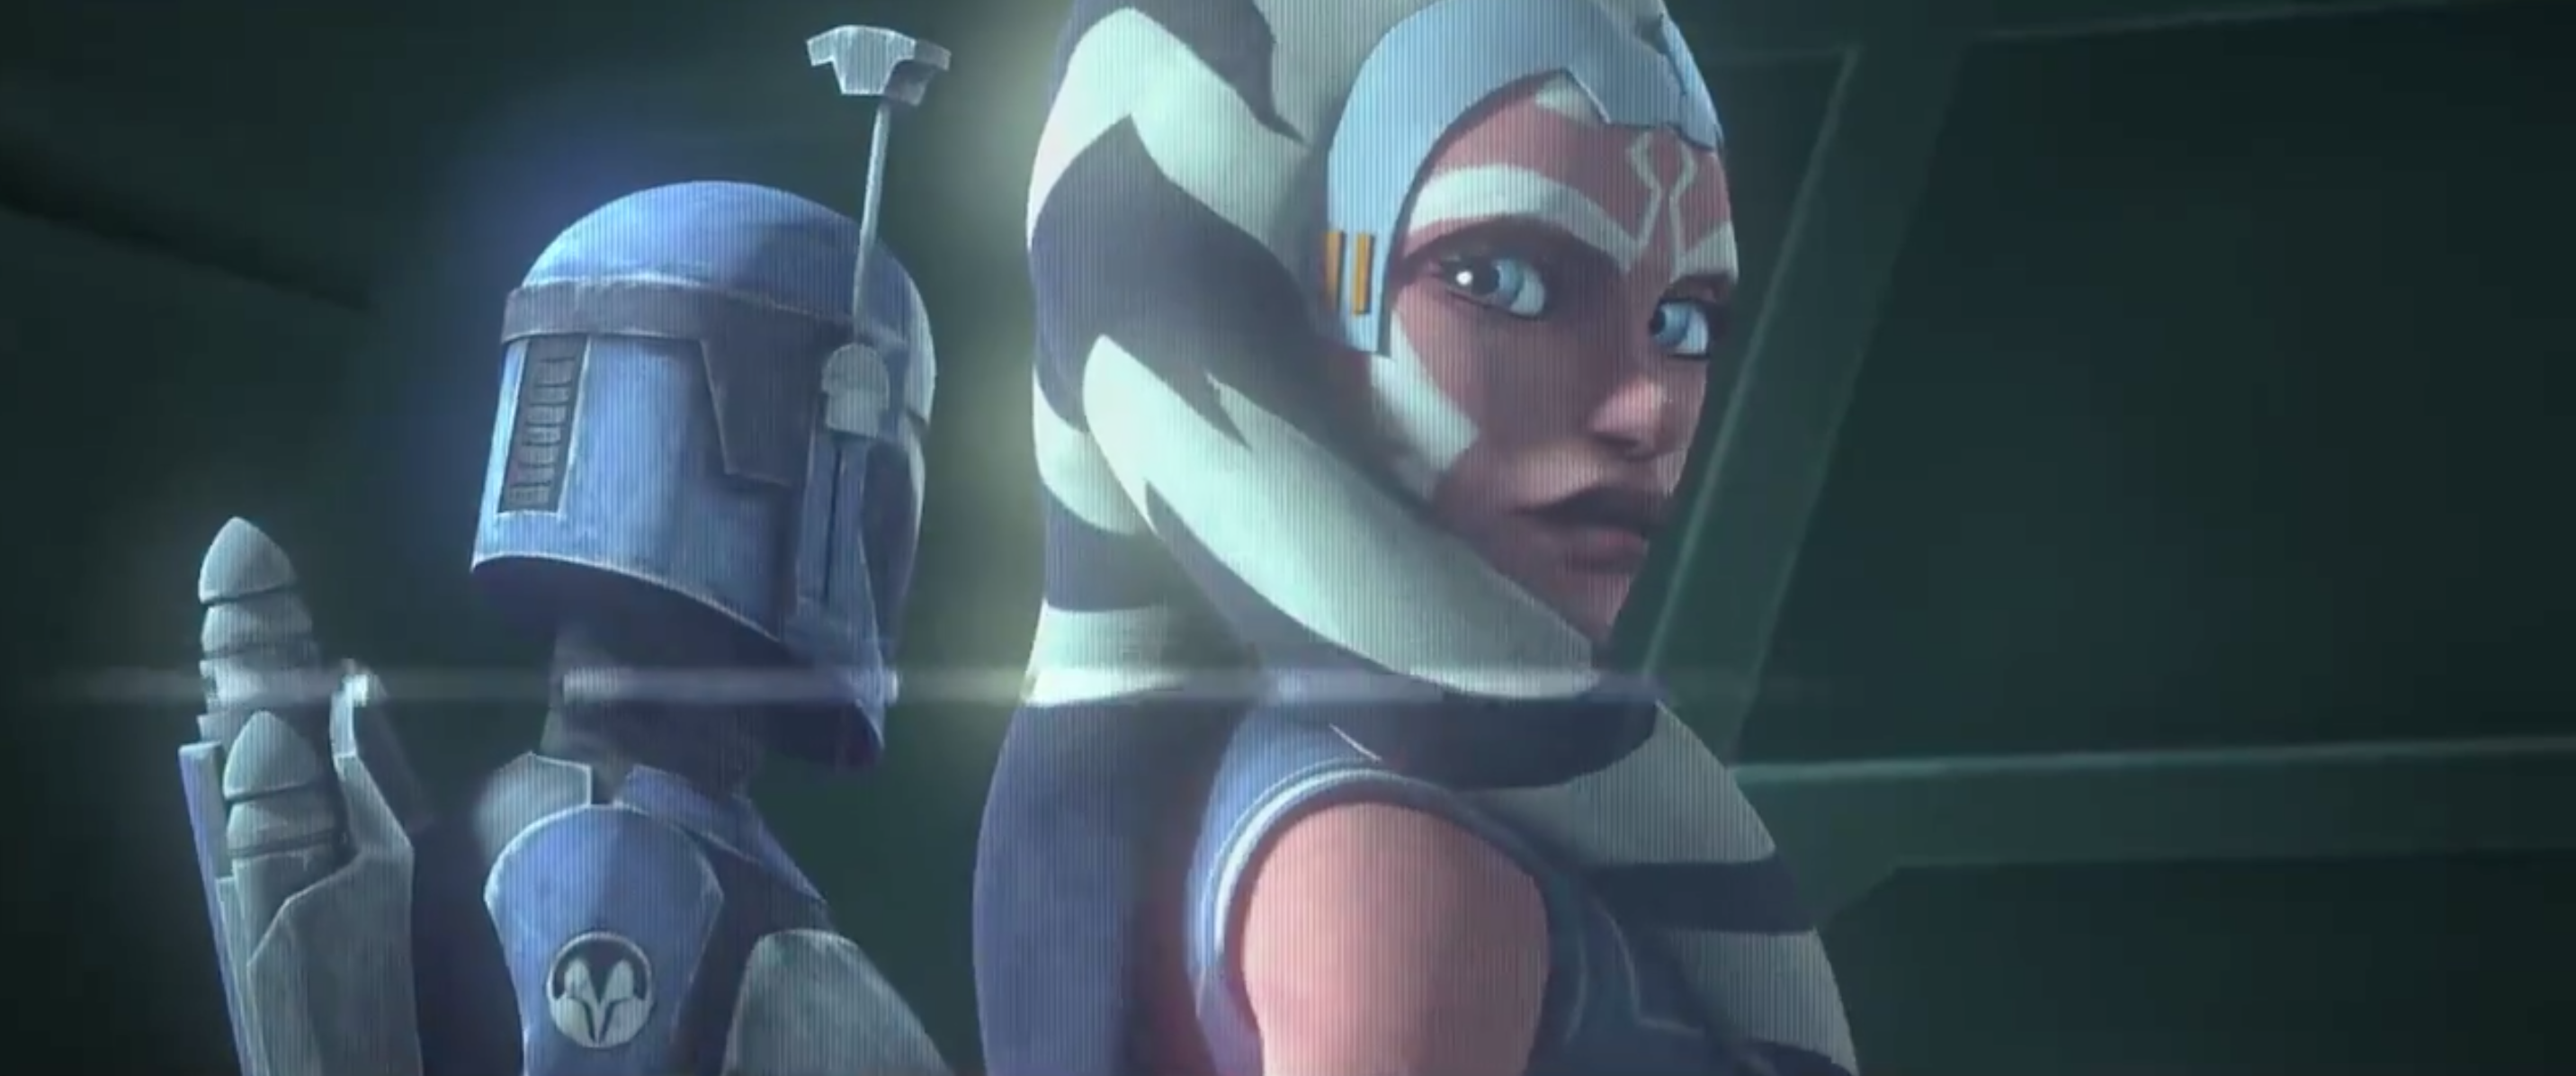 Star Wars The Clone Wars season 7 trailer, release date